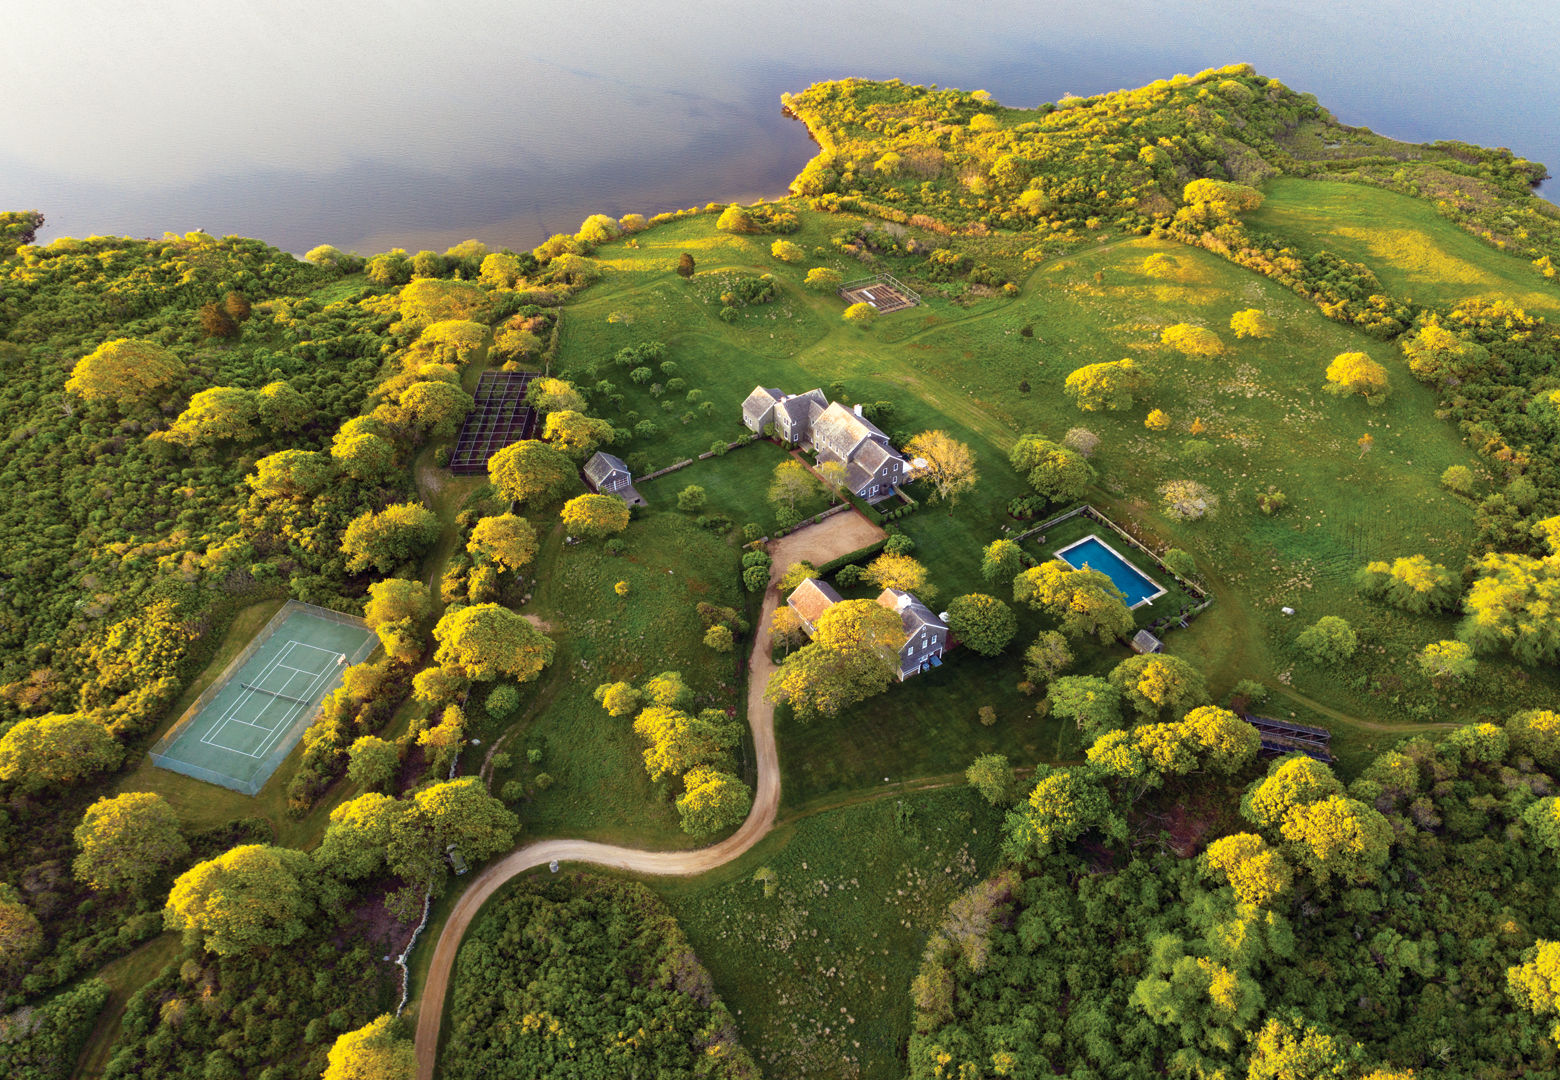 The estate's structures are in complete harmony with their natural surroundings. (Courtesy Christie's)